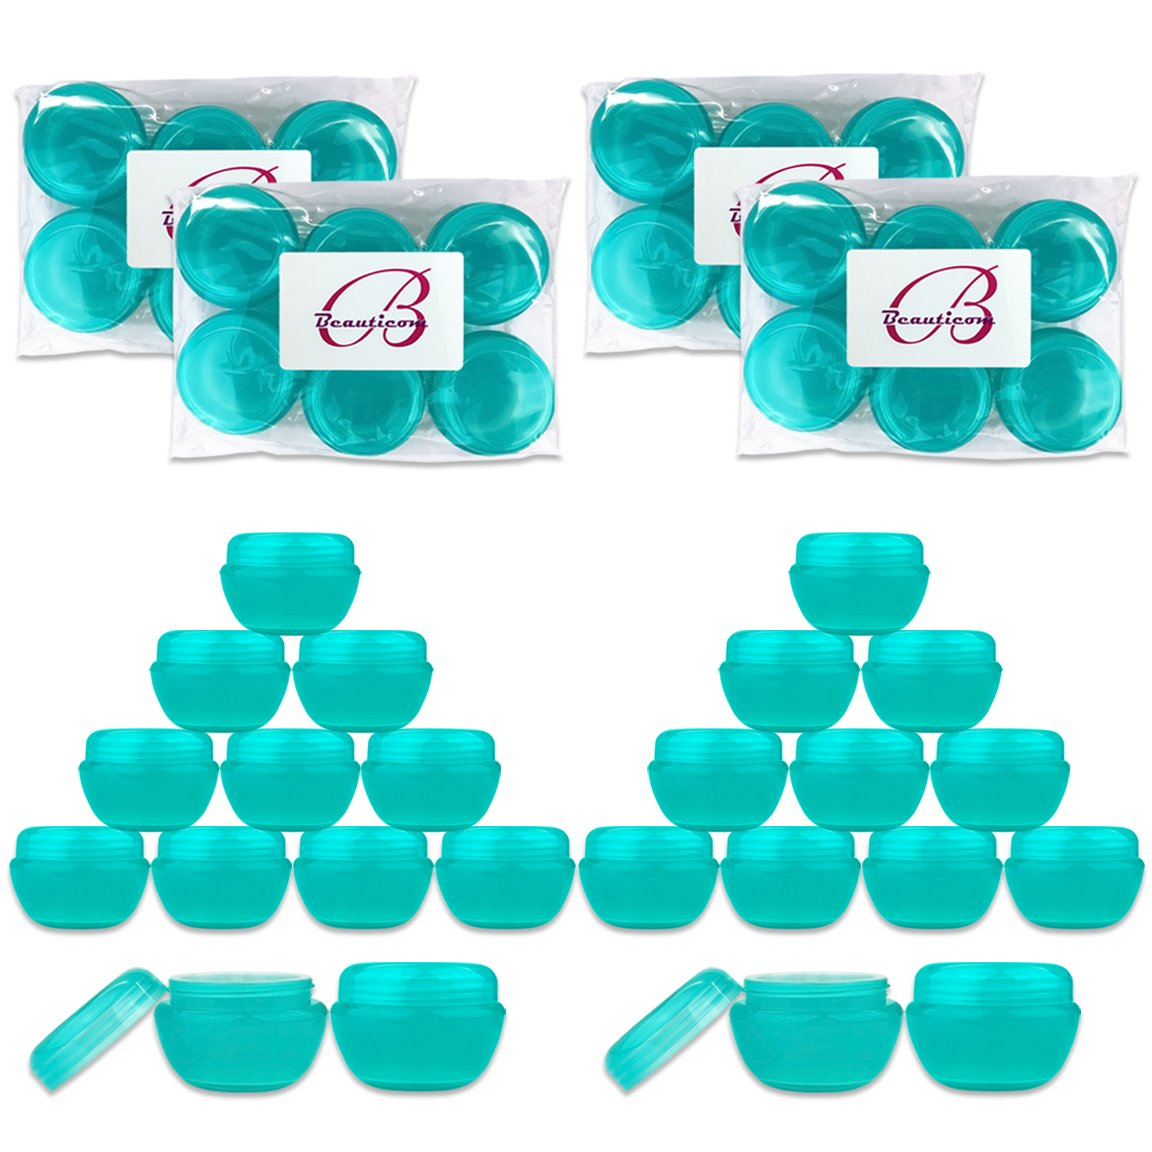 Beauticom 24 Pieces 10G 10ML Teal Container Jars with Inner Liner and Lid for Scrubs, Oils, Salves, Creams, Lotions, Makeup Cosmetics, Nail Accessories, Beauty Aids – BPA Free